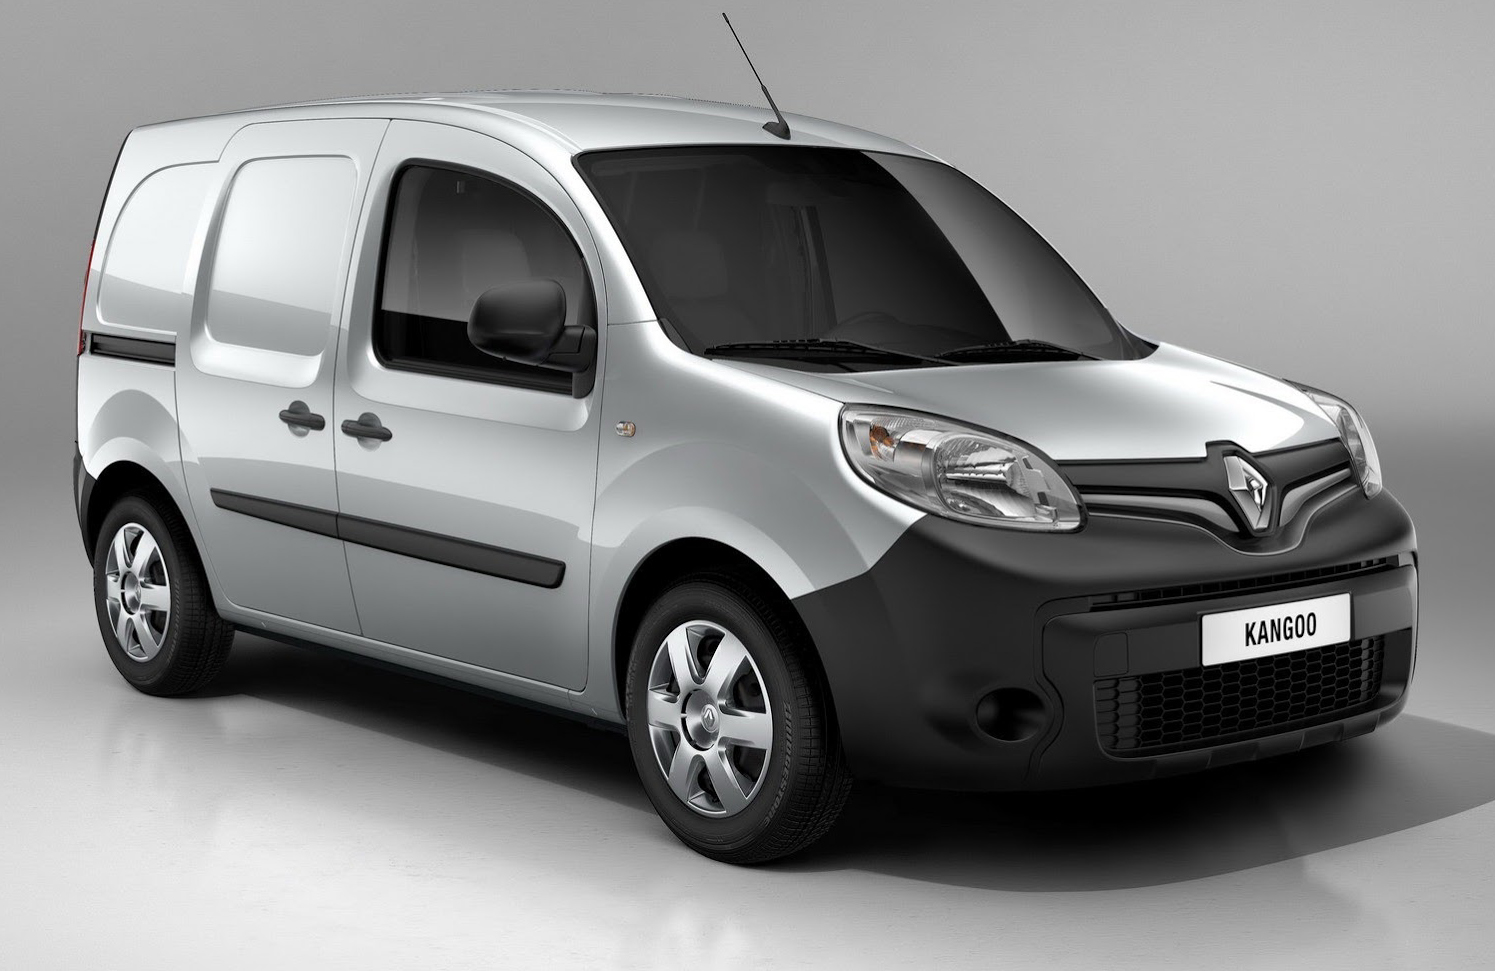 The Renault Kangoo van range has been overhauled for 2013 and has seen